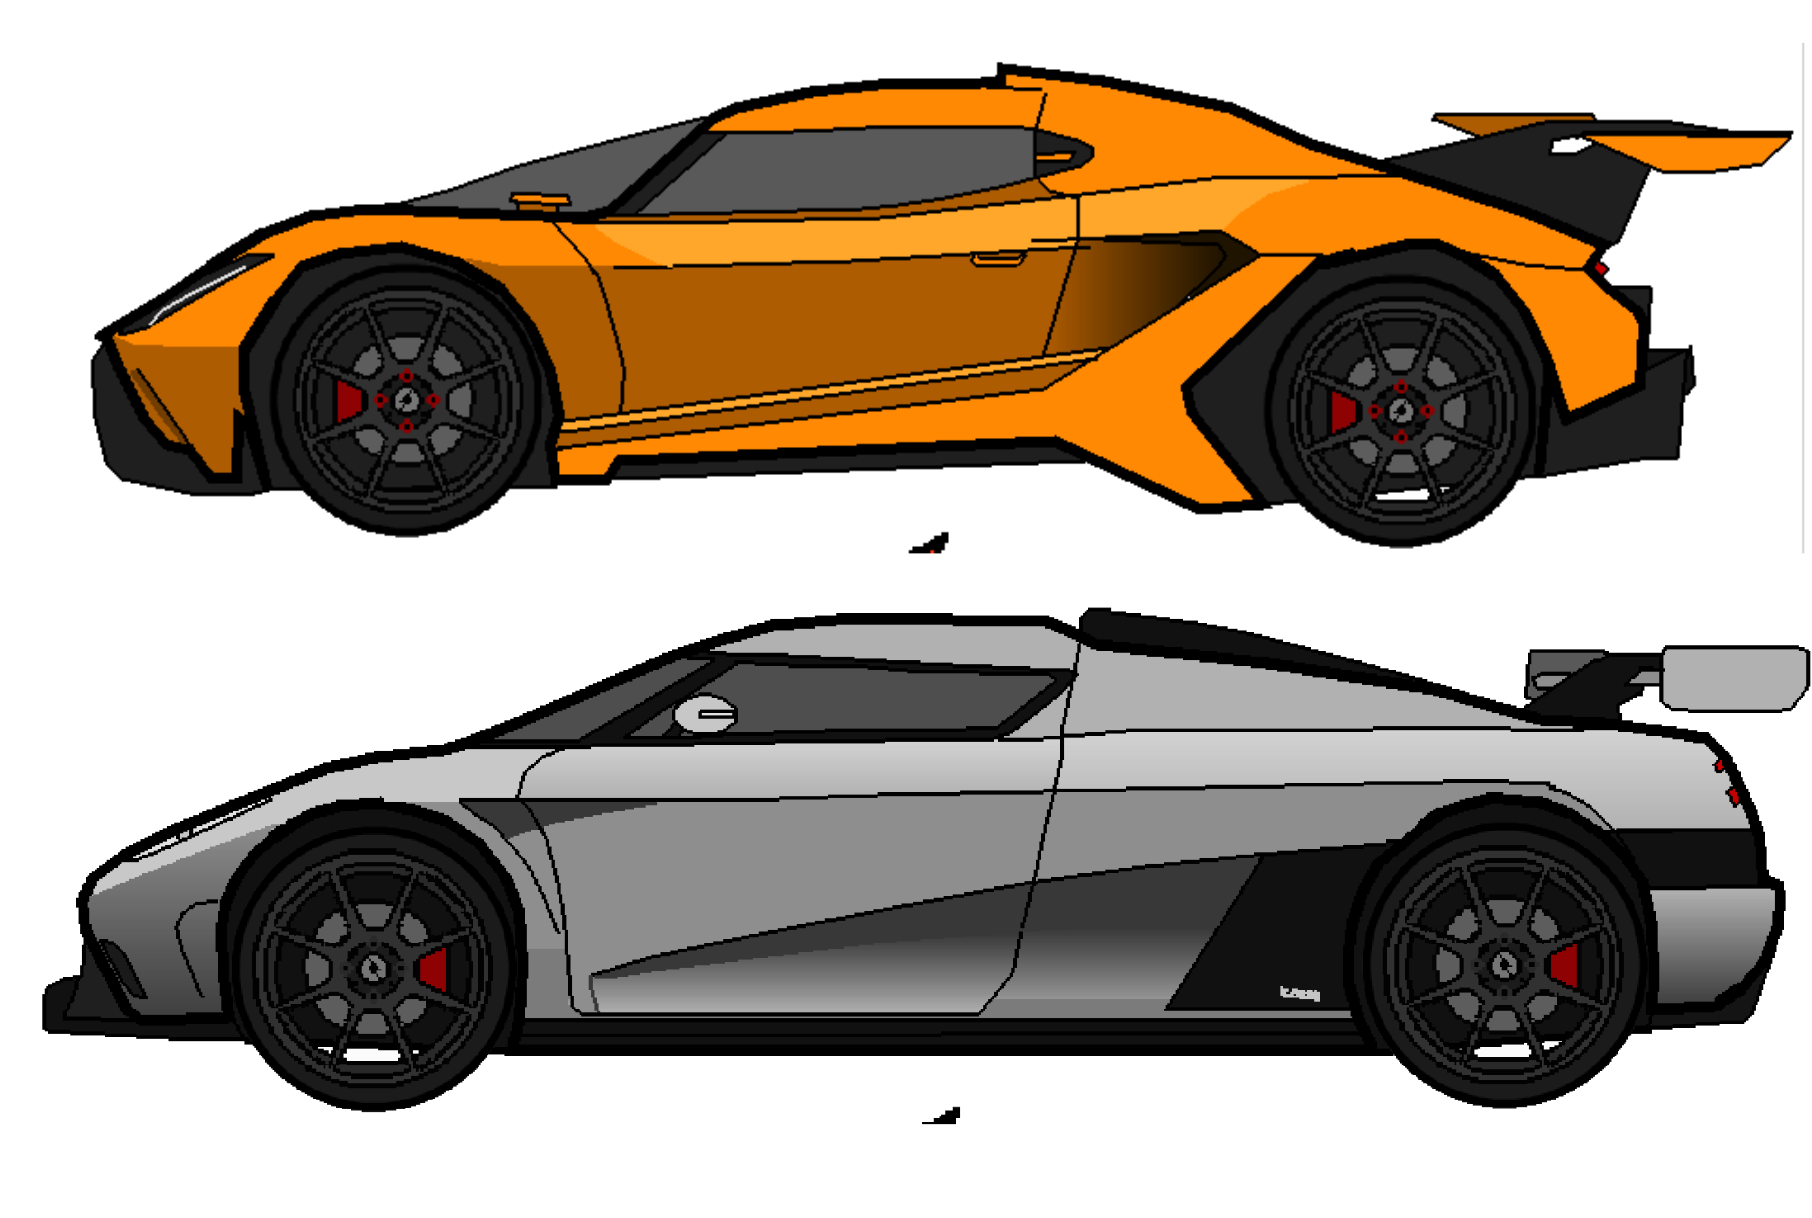 So I drew some GTA V cars! Right now I'm currently stuck on what I